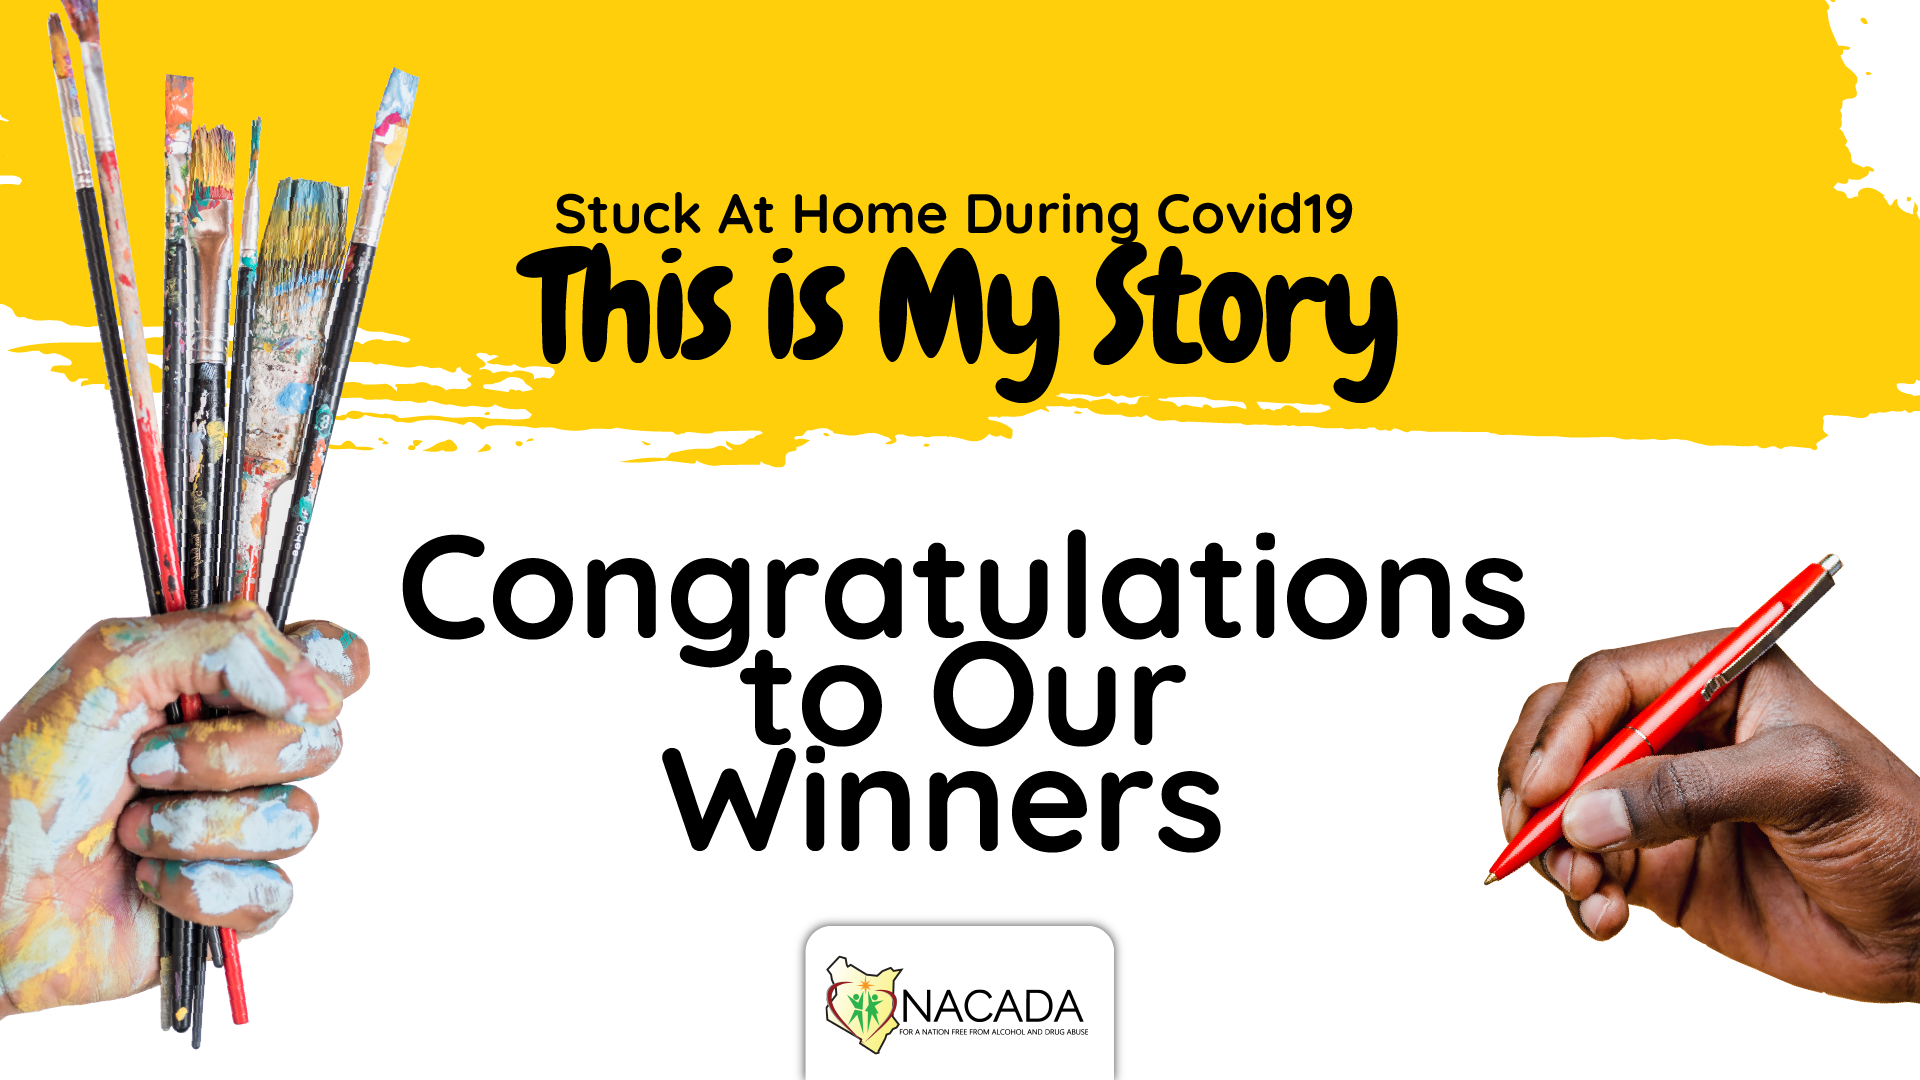 NACADA Congratulations to our winners